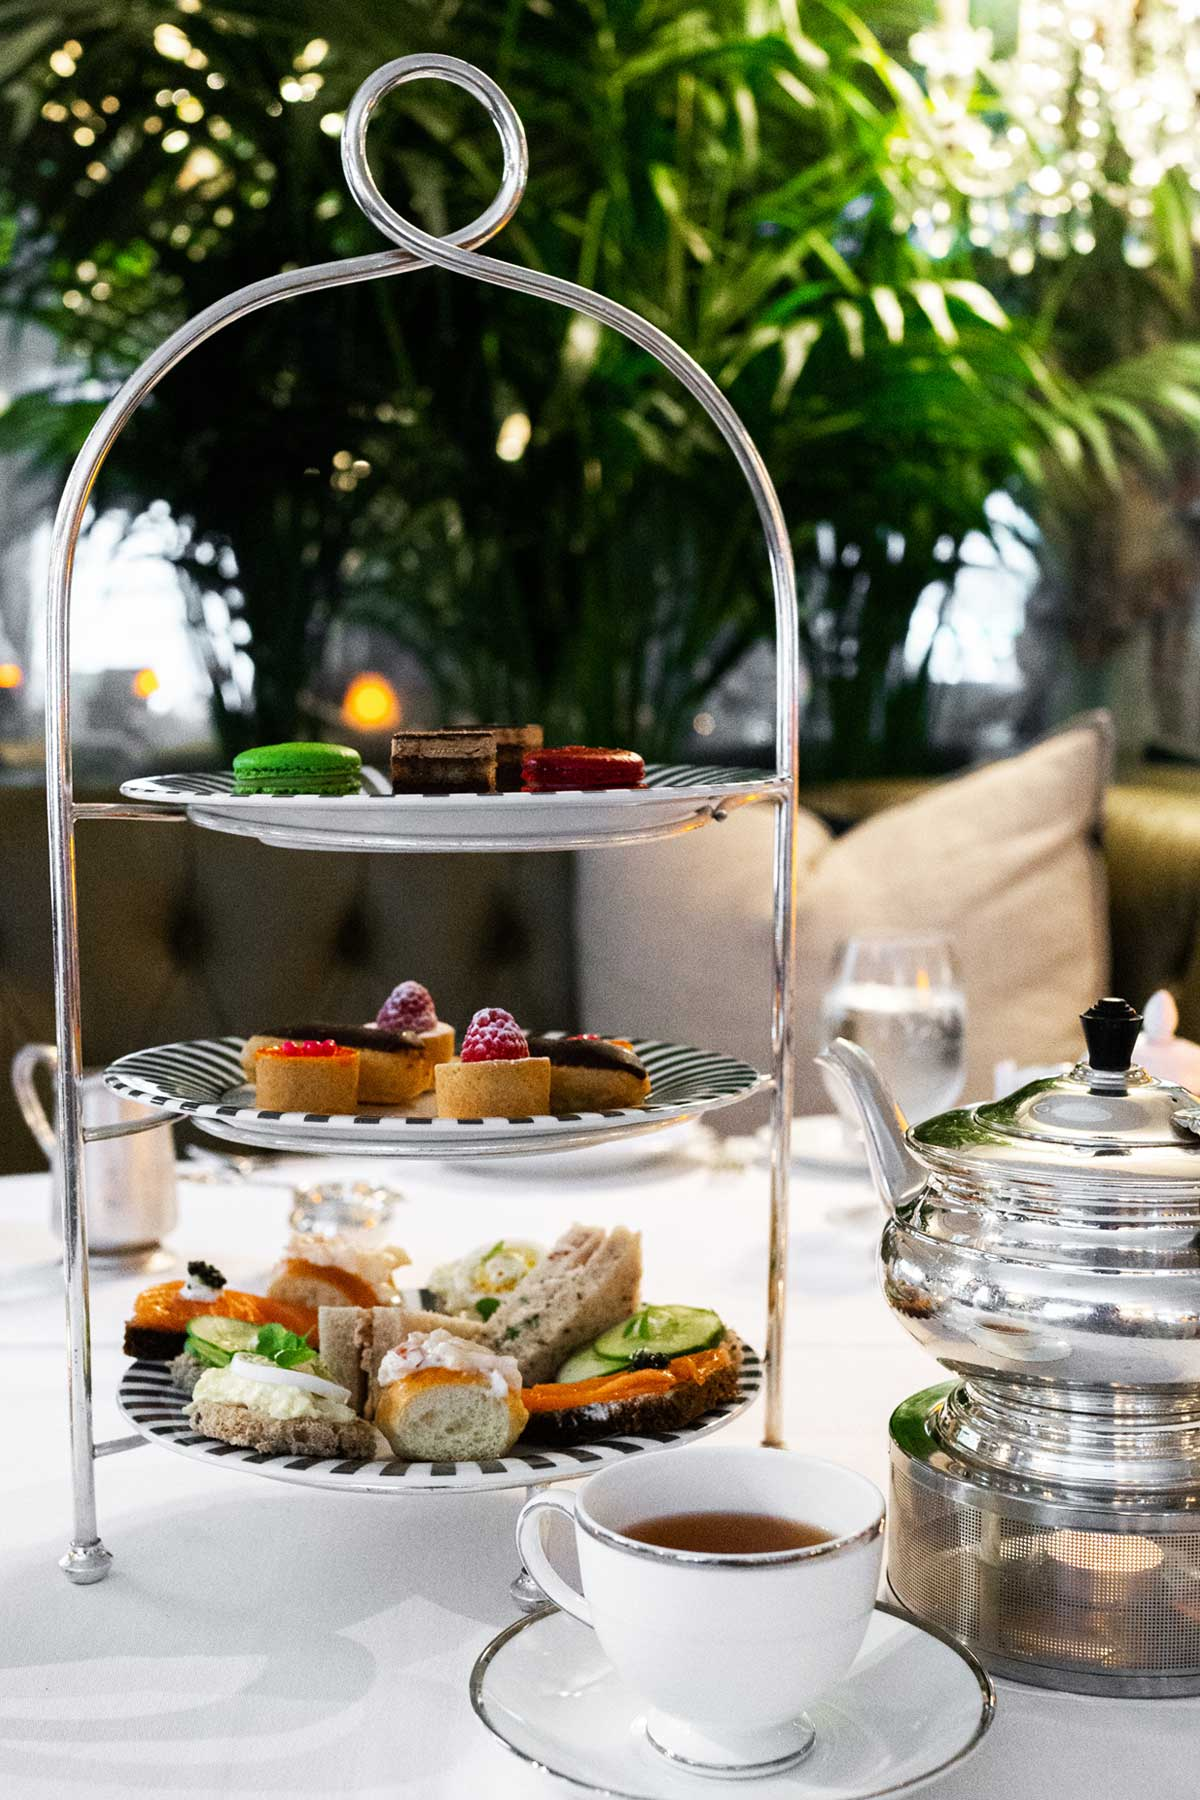 Three-tiered tray and tea on a table for afternoon tea.